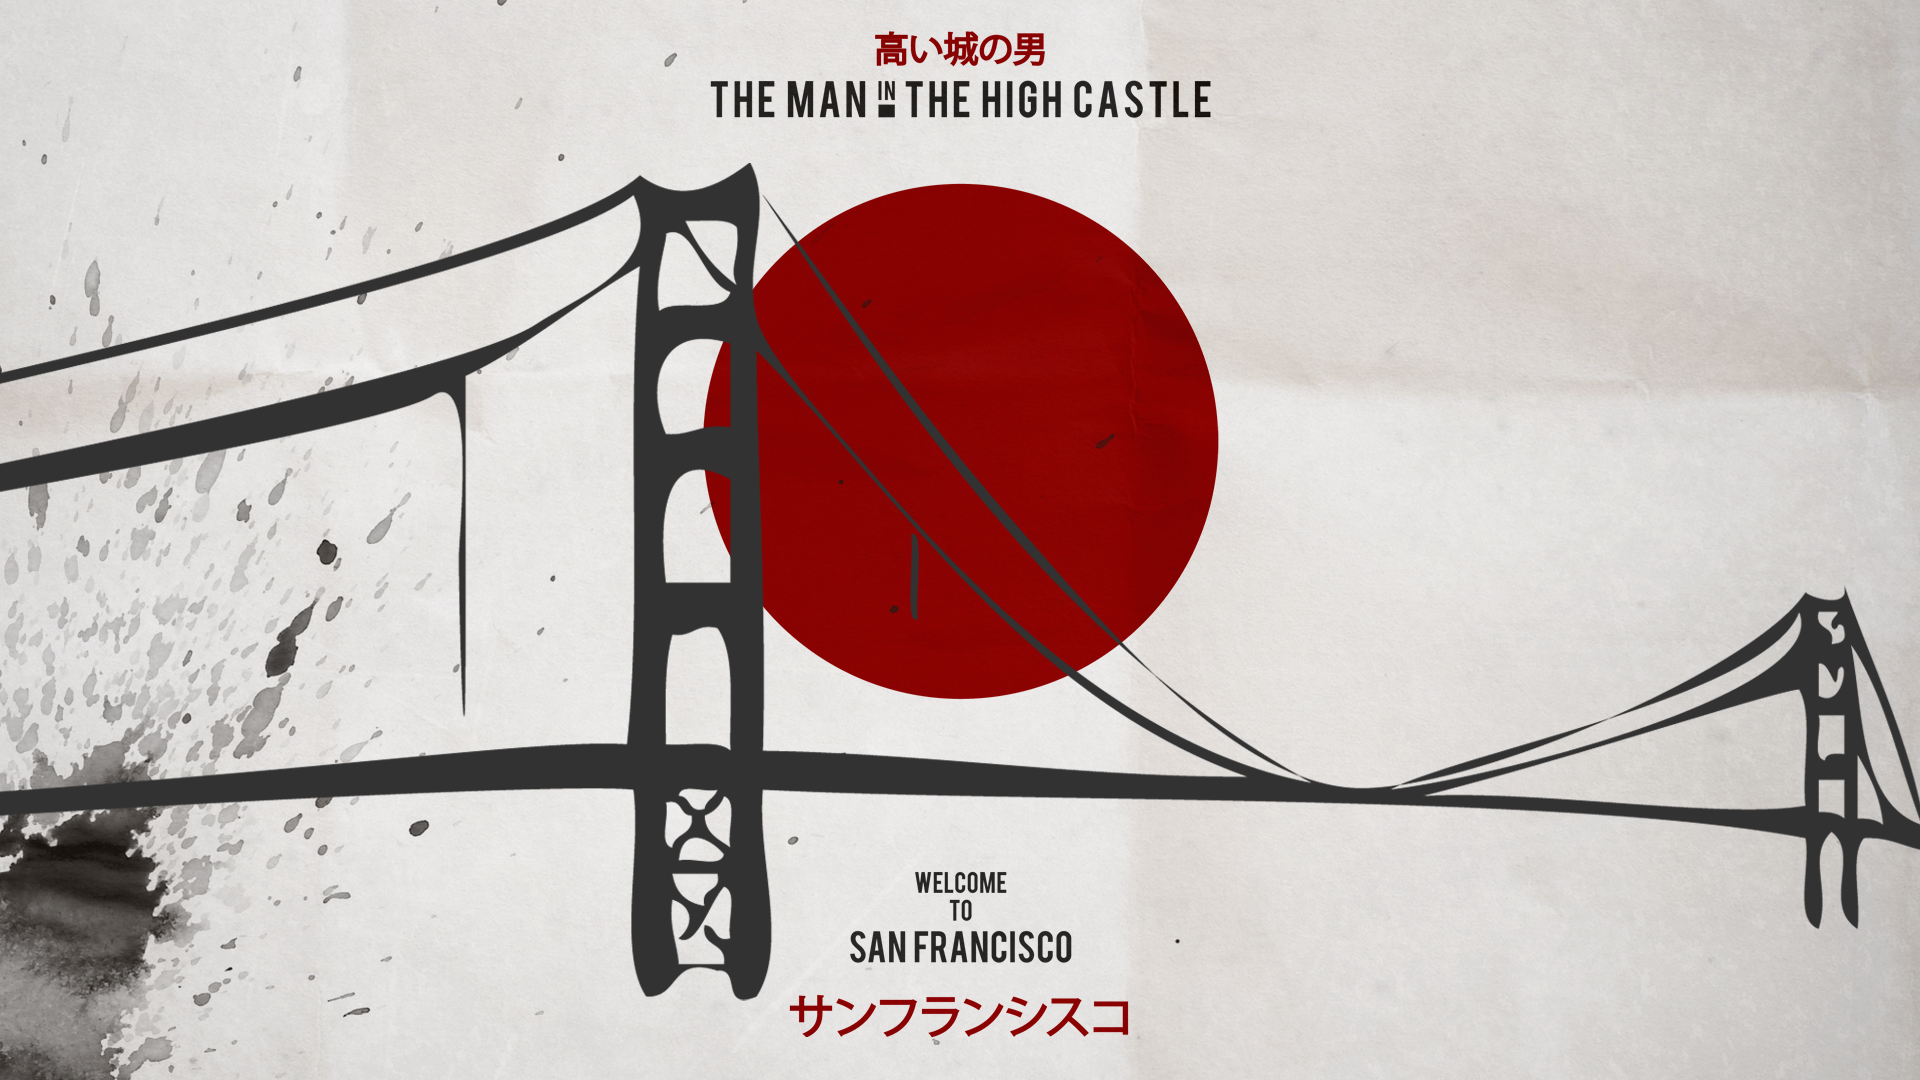 The Man In The High Castle Wallpaper 3 By Caparzofpc On Deviantart